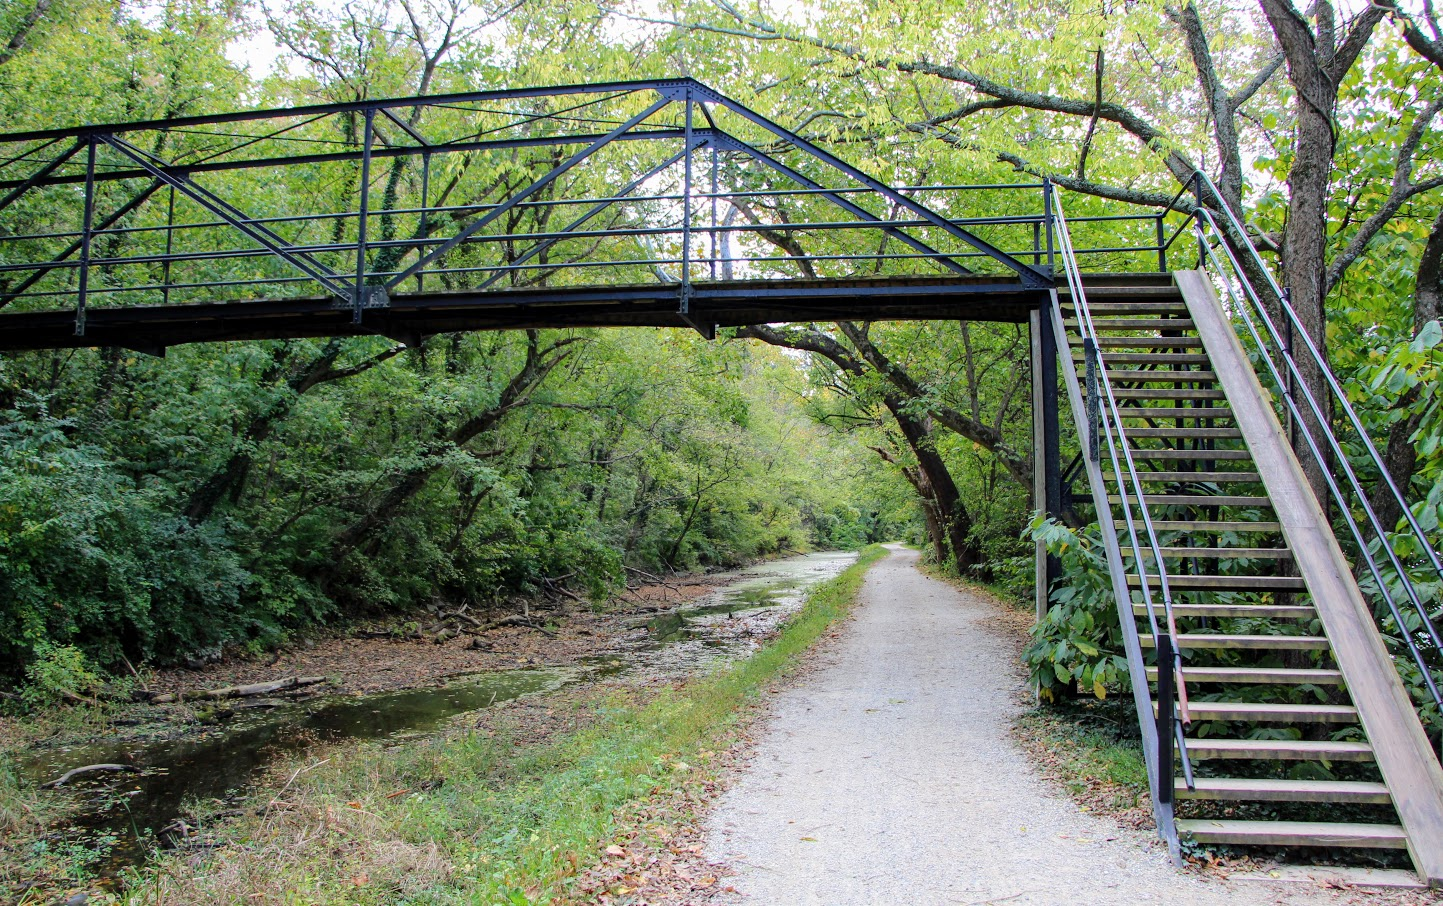 c&o-canal-6